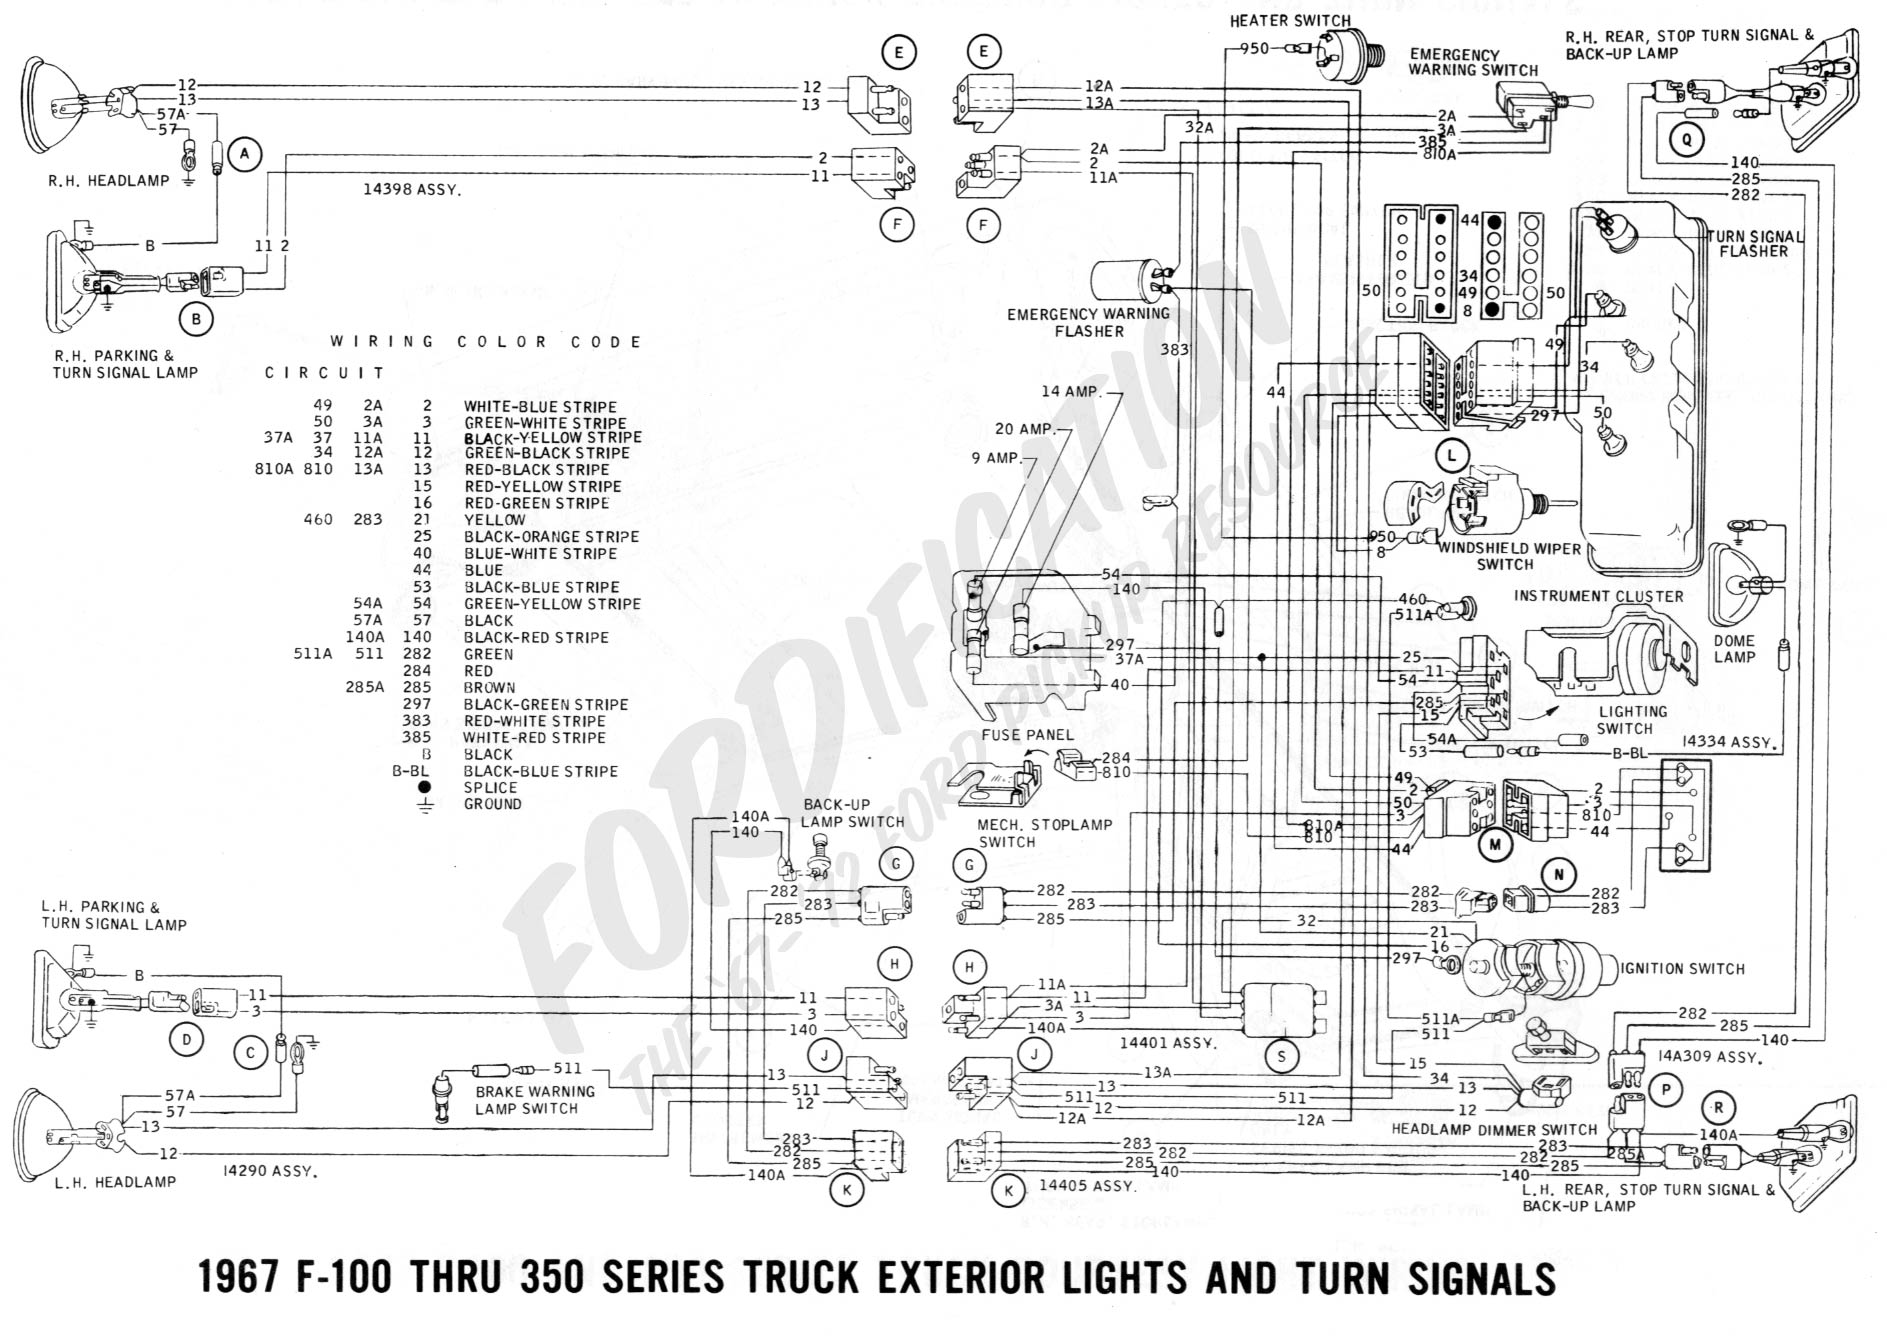 Schematics h as well 1bts8 98 Accord Won T Start Clicking likewise 1965 Ford F100 Dash Gauges Wiring together with 1039331 Explanation Of Engine Electrical in addition Gm Delco Remy Cs130 Alternator Wiring Diagram. on ford pinto starter solenoid wiring diagram